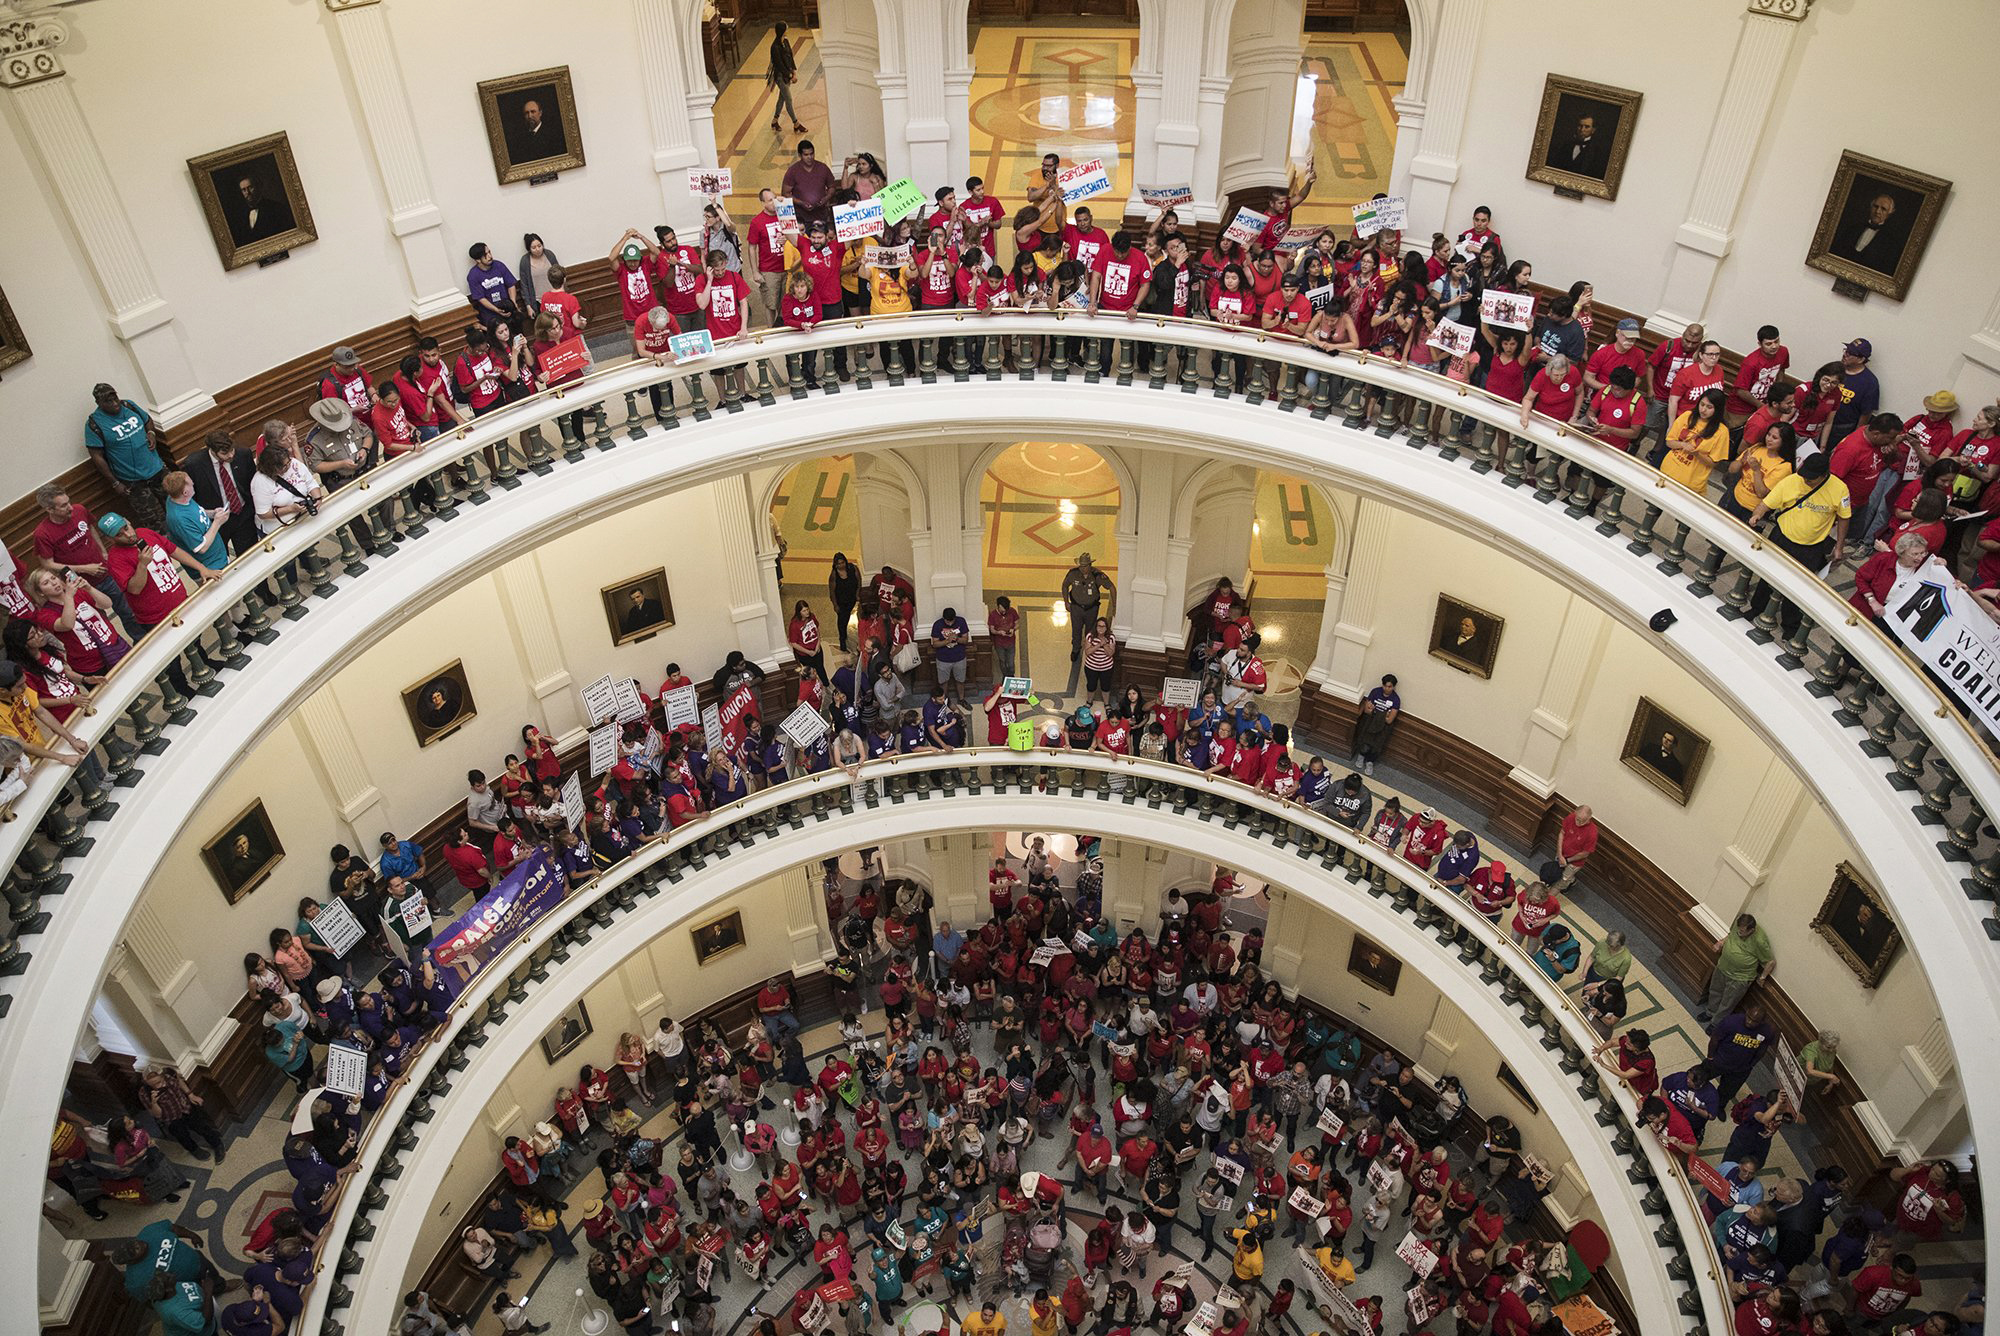 Image: Hundreds of protesters line the balconies of the state Capitol rotunda in Austin